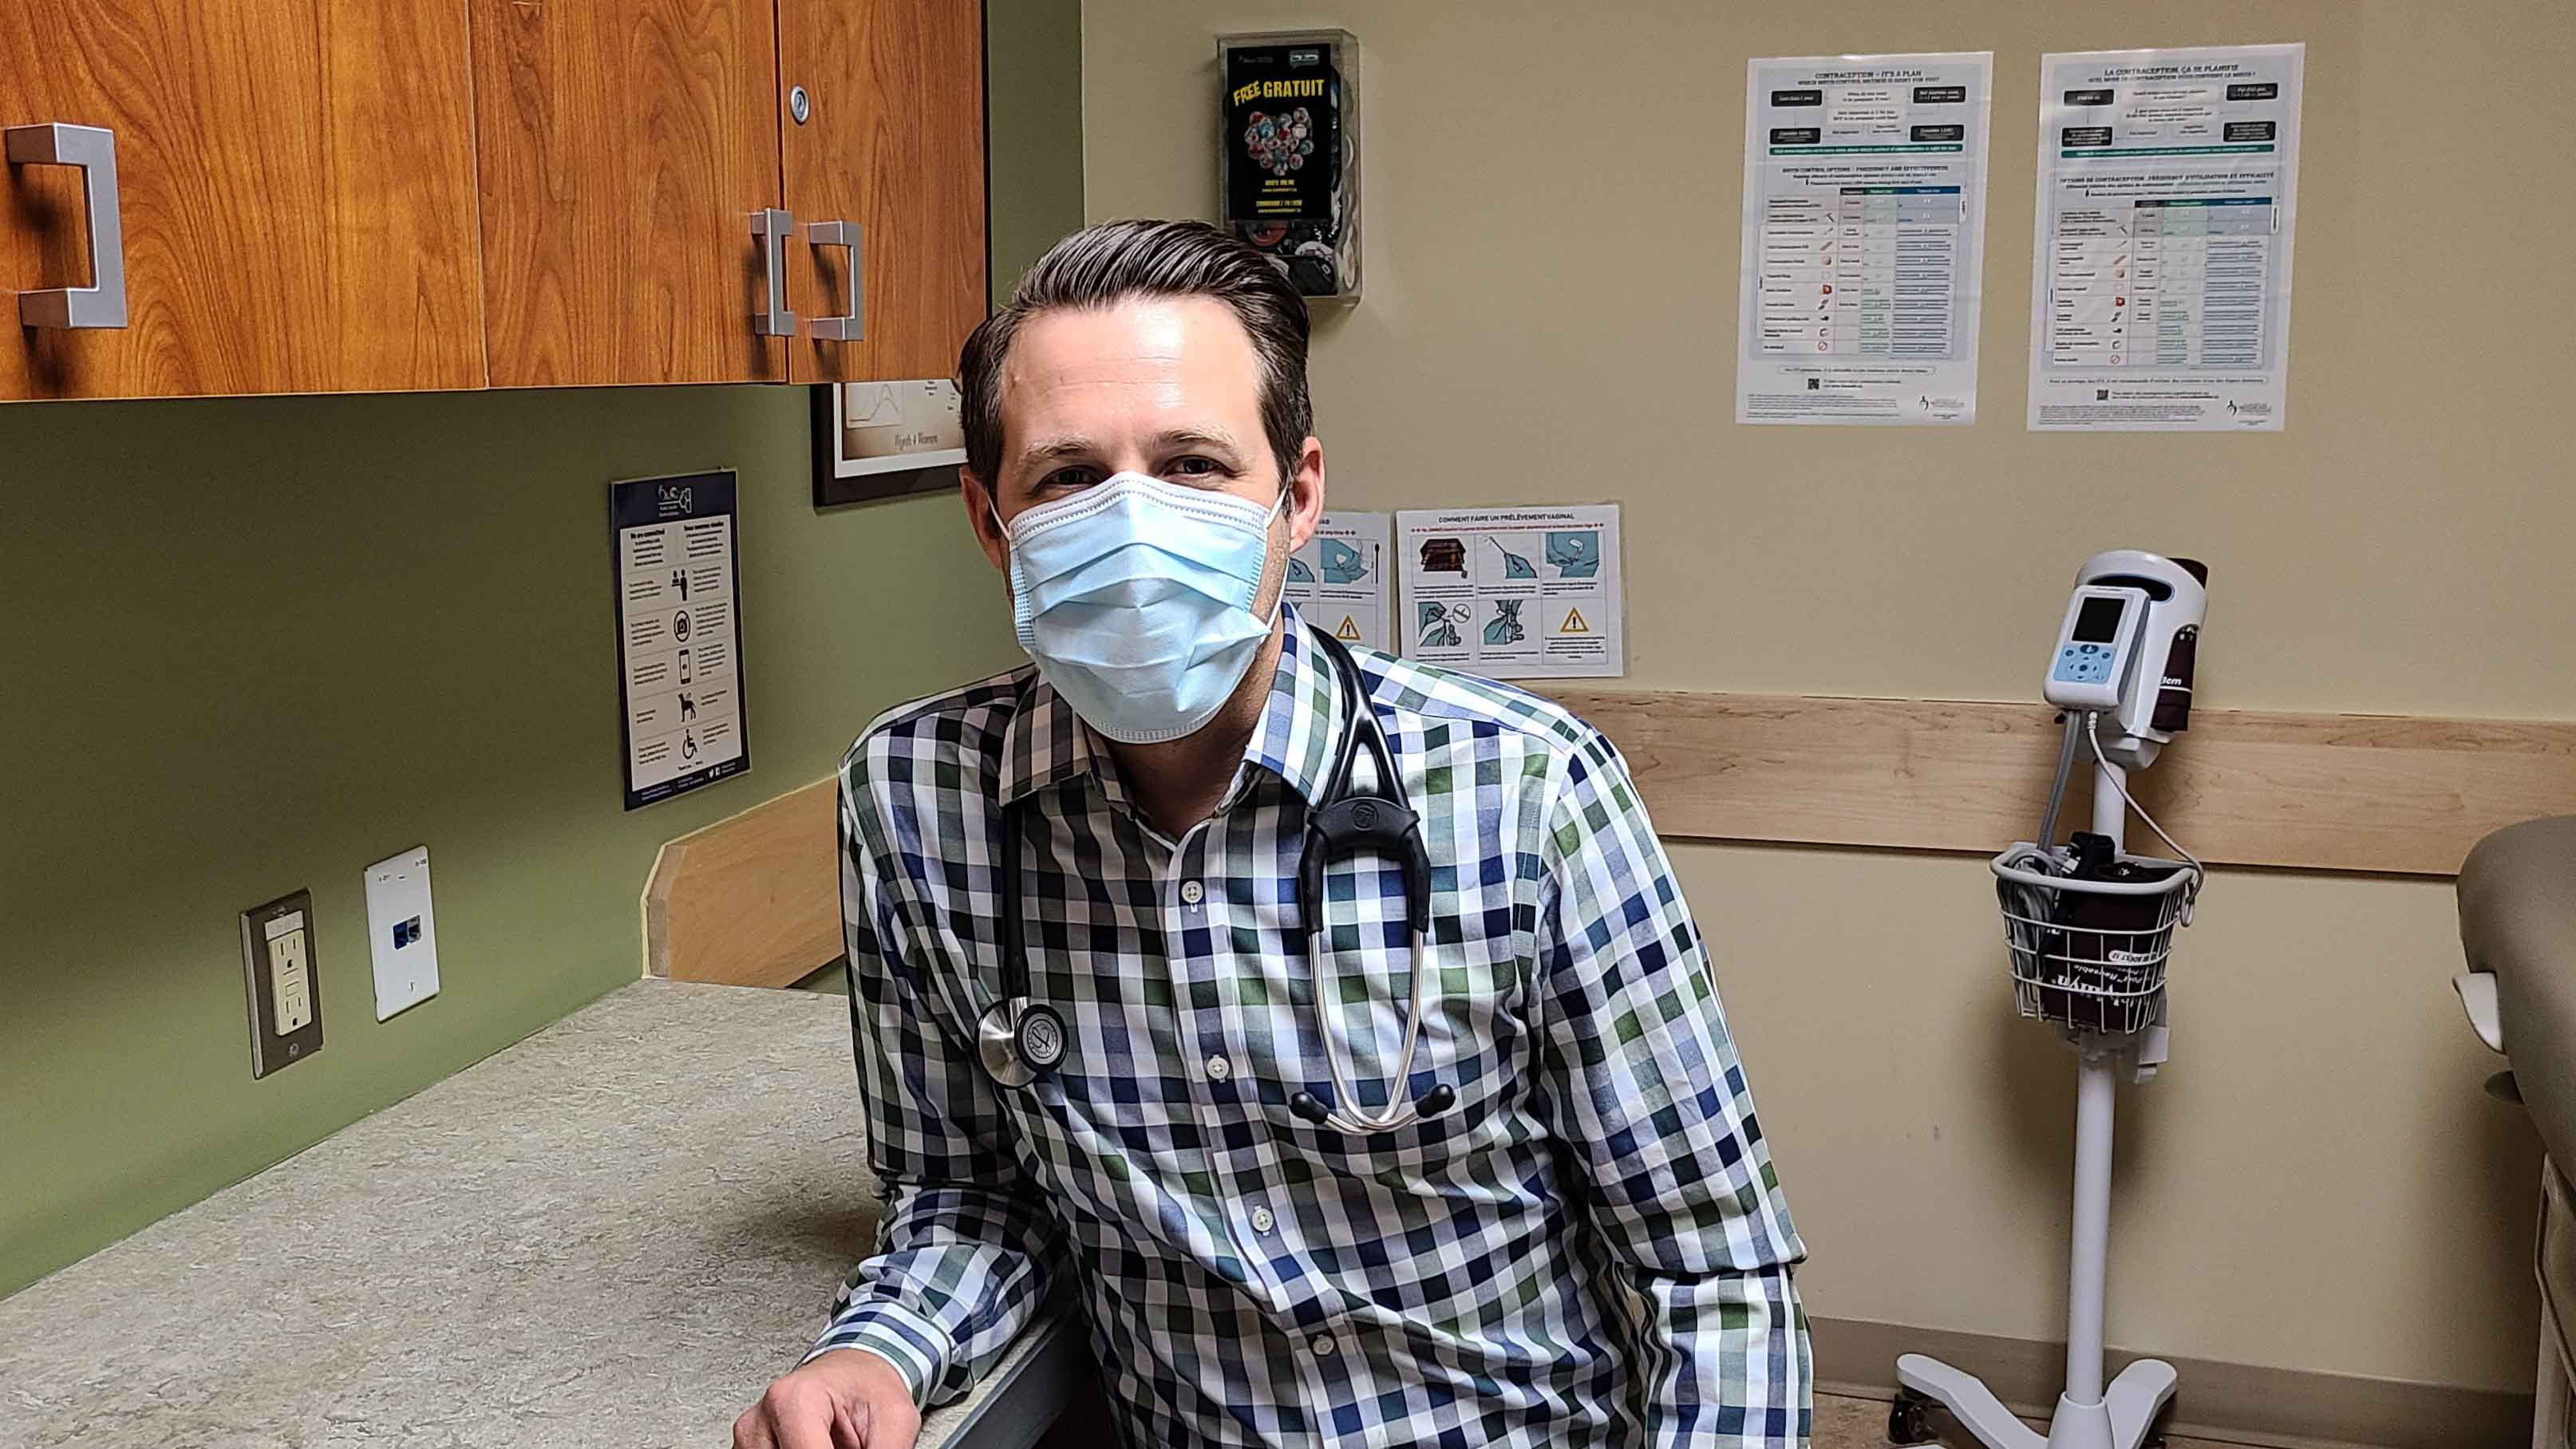 A nurse wearing a mask is sitting in a clinic.